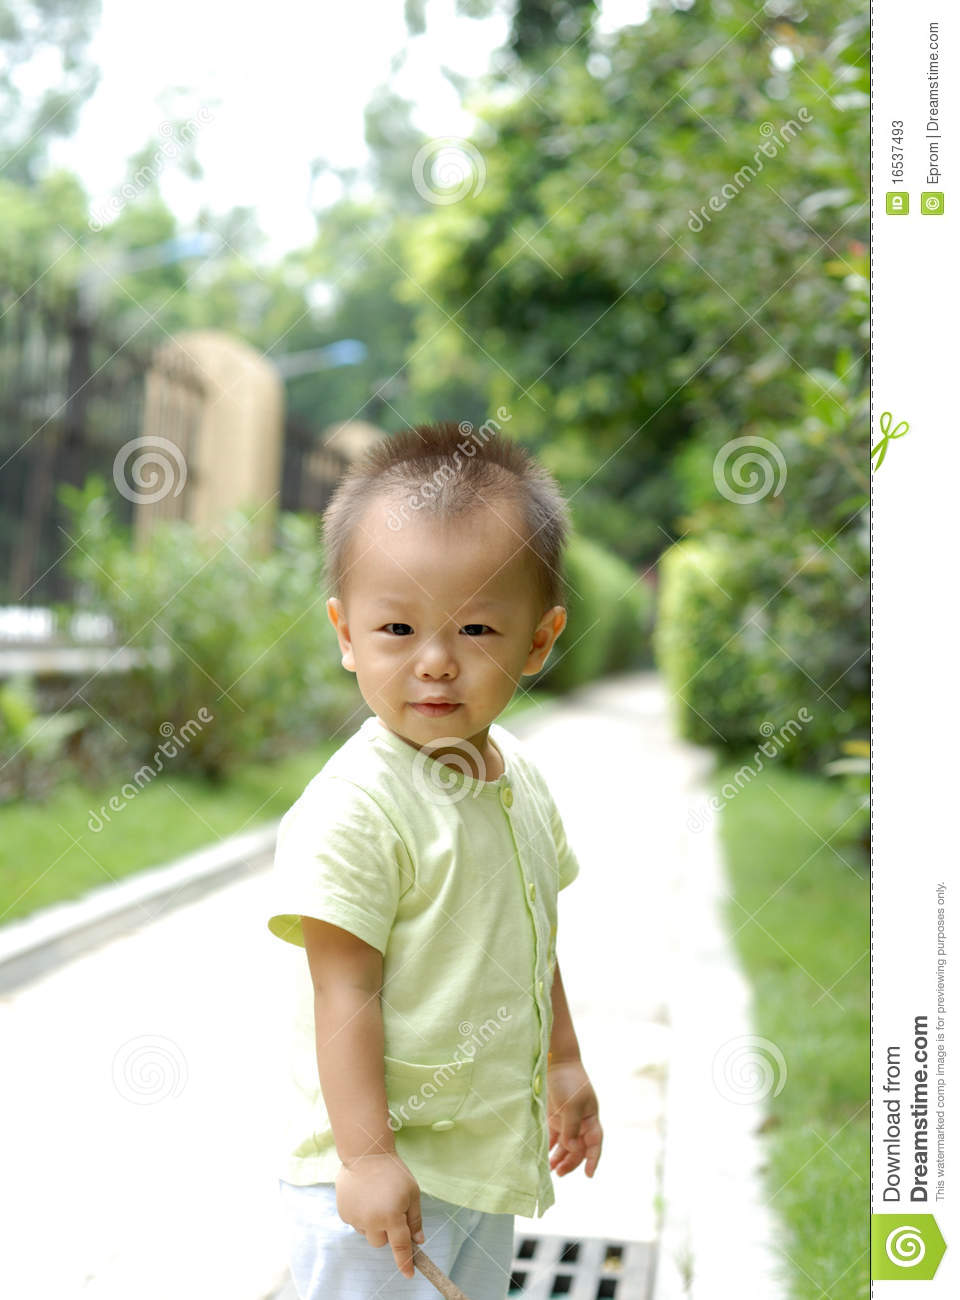 portrait of cute baby - photo #31